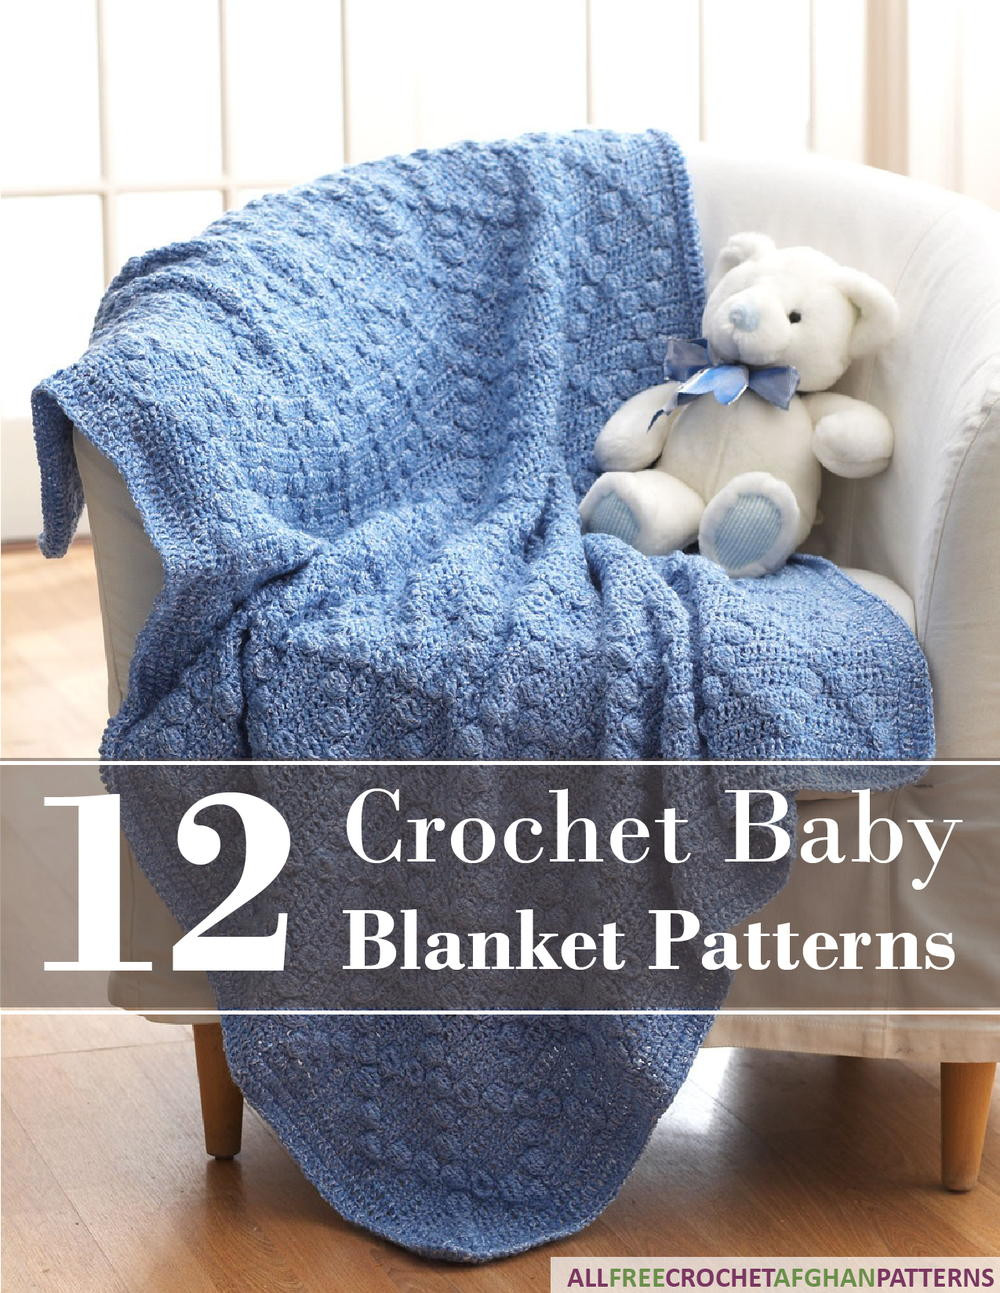 Baby Boy Crochet Blanket Patterns Elegant 12 Crochet Baby Blanket Patterns Free Ebook Of Baby Boy Crochet Blanket Patterns Inspirational Turquoise Baby Blanket Chunky Crochet Blanket for Baby Boy